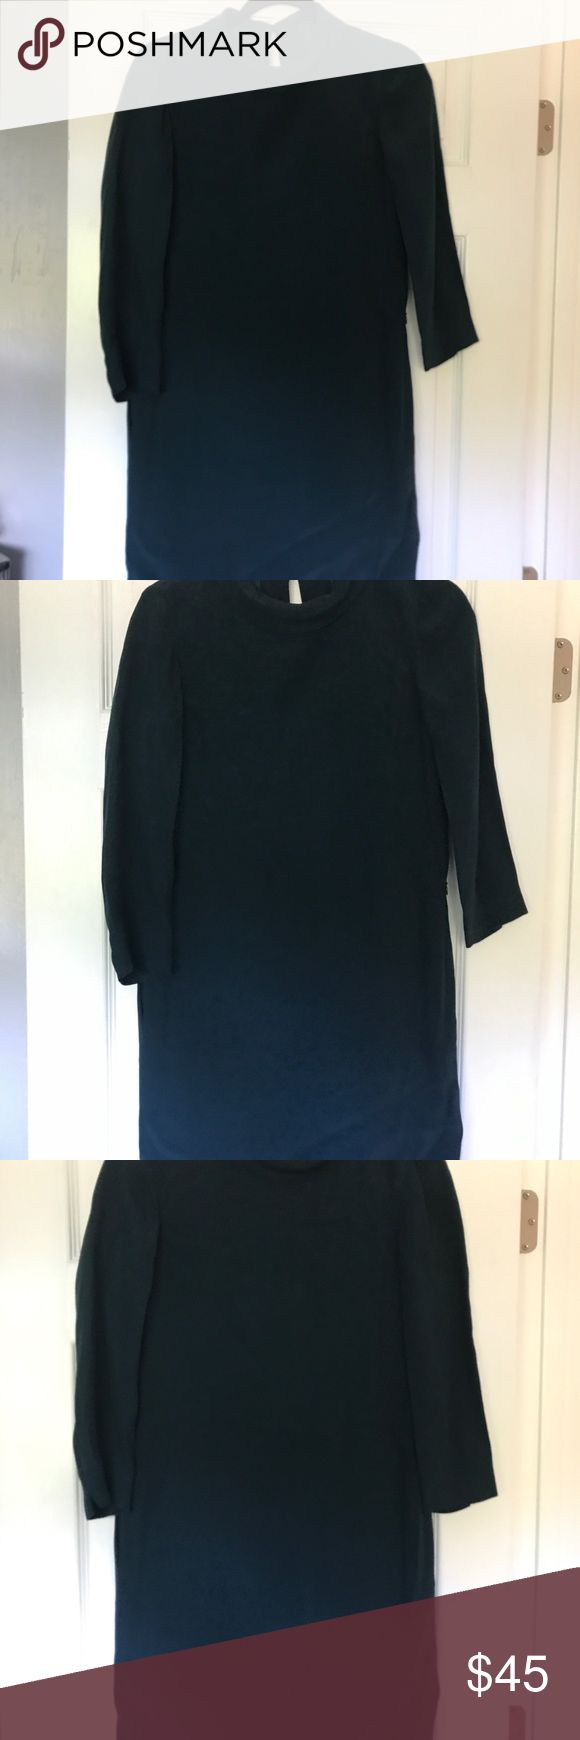 Like new classy work dress Perfect for work, classy, arms go just belong elbows, beautiful dark green color, button in back, high neck, loose fit Massimo Dutti Dresses Midi